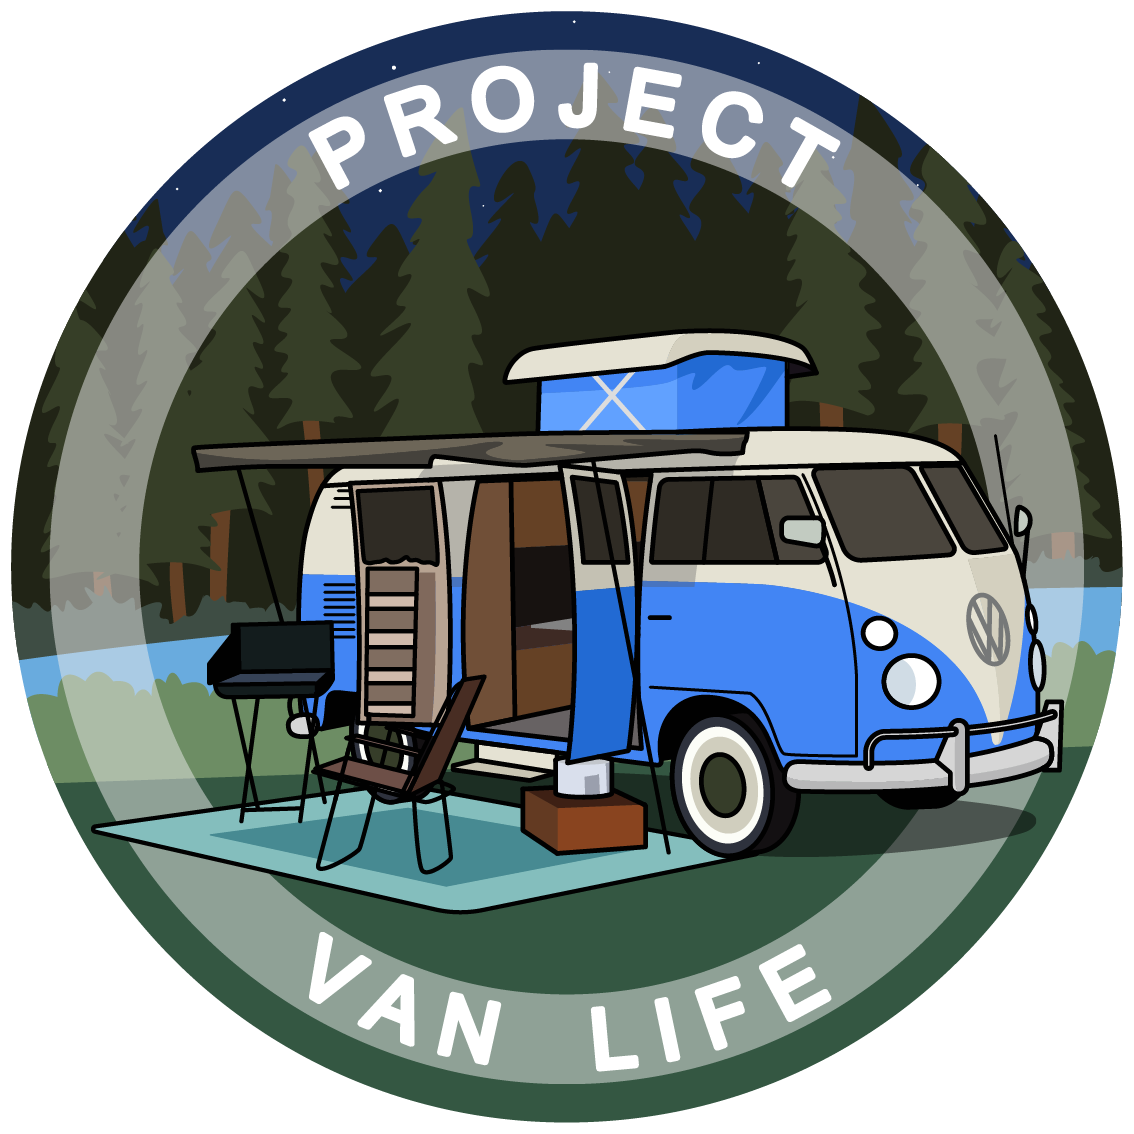 Minivan clipart family camp. Van life forum projectvanlife